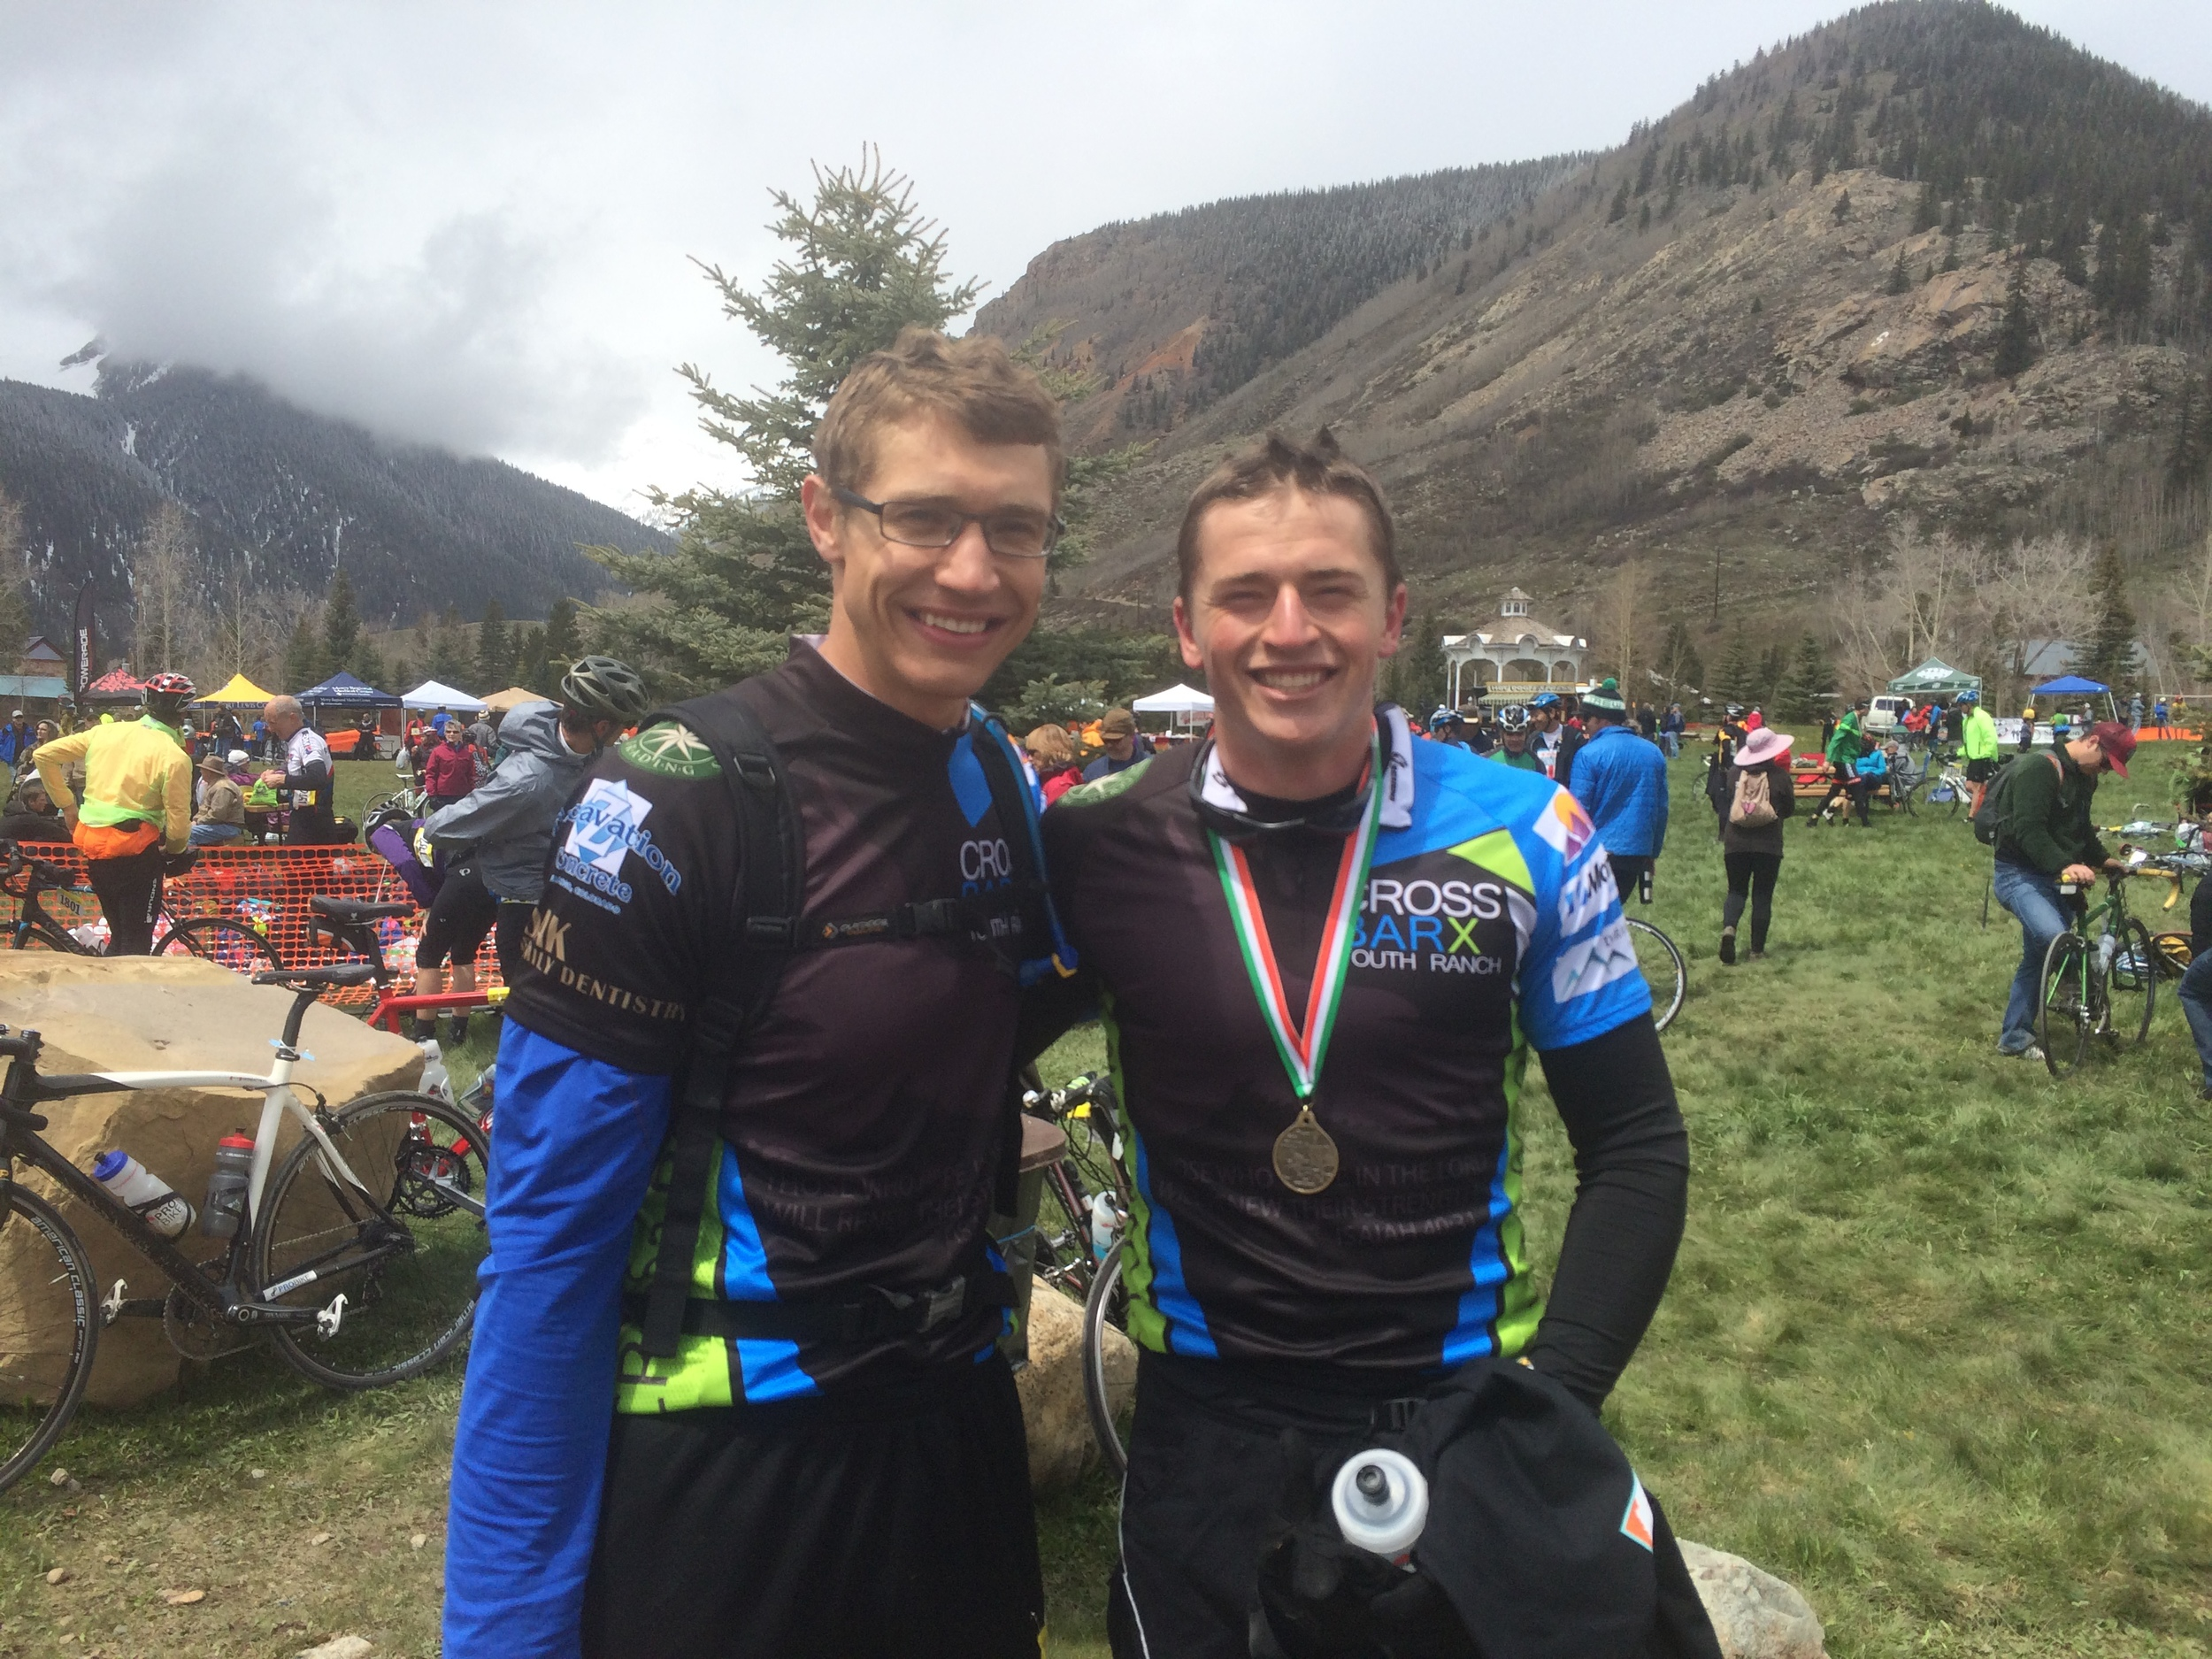 Dustin and Jacob found themselves in Silverton for the Iron Horse Bicycle Classic. They hadn't specifically trained for it, but we all know these boys put in the work in the gym.